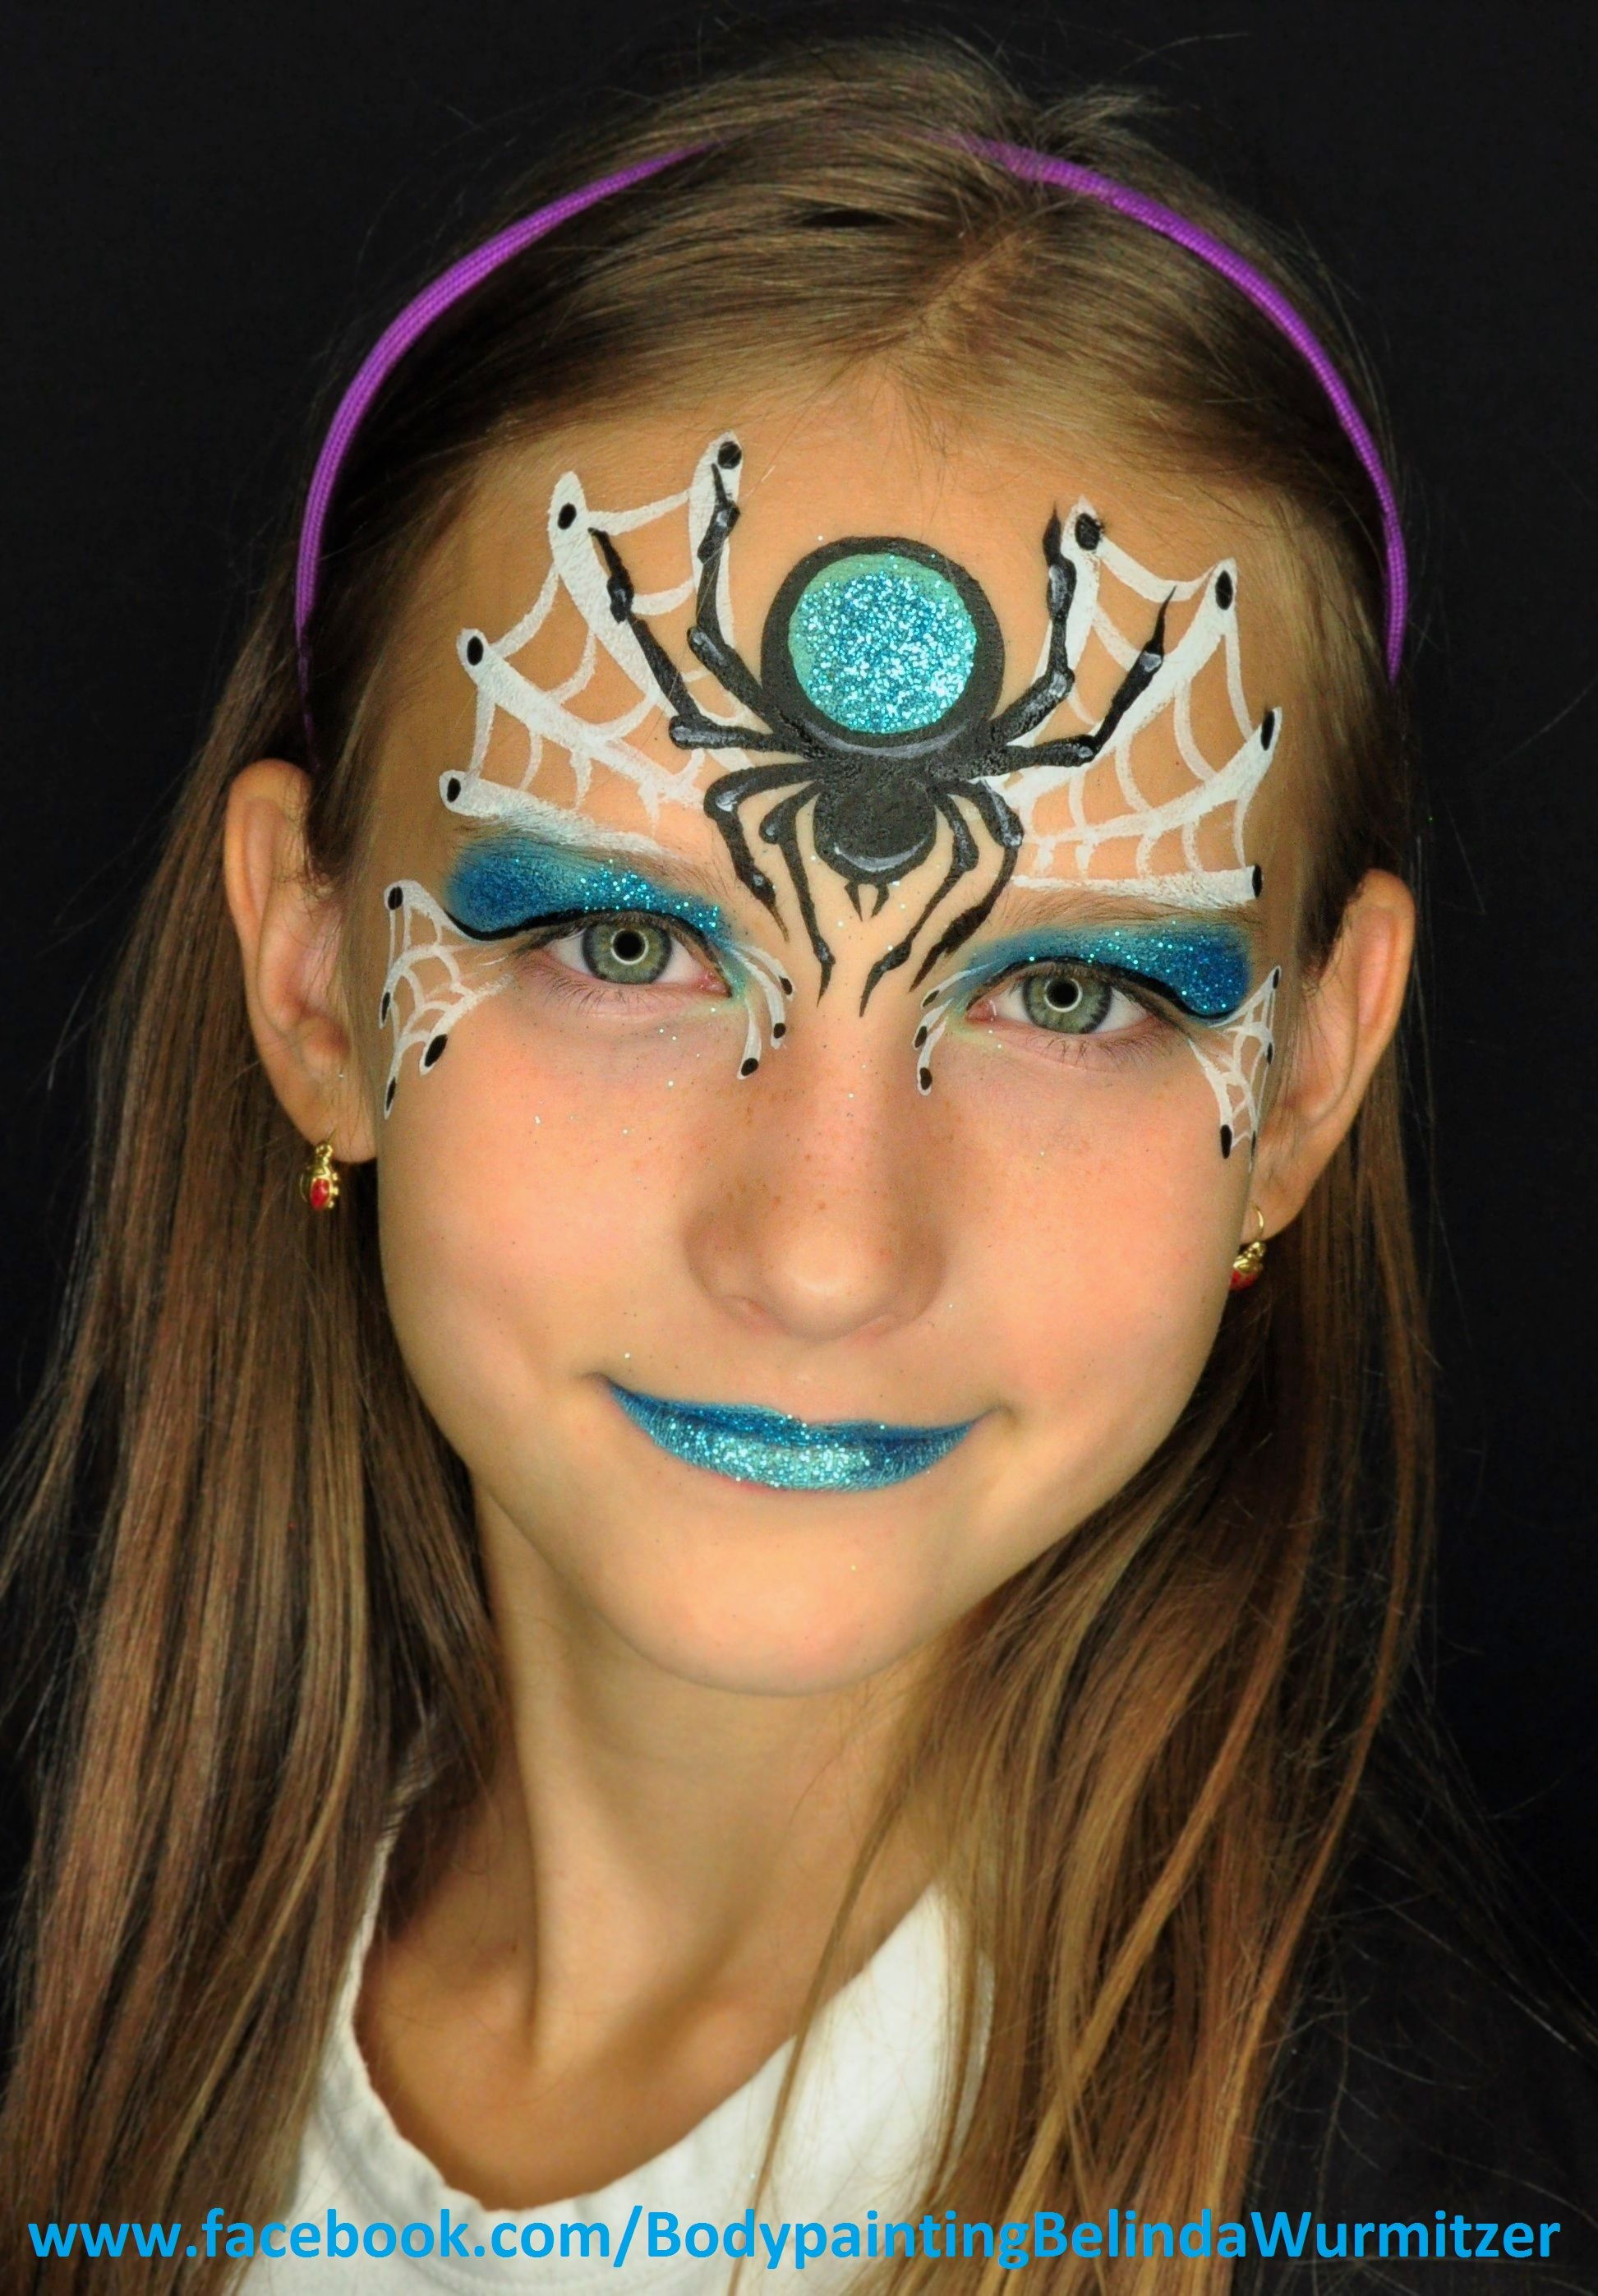 Halloween Hexe Schminken Kinder Spinne Spider Artist Belinda Wurmitzer Face Paintings